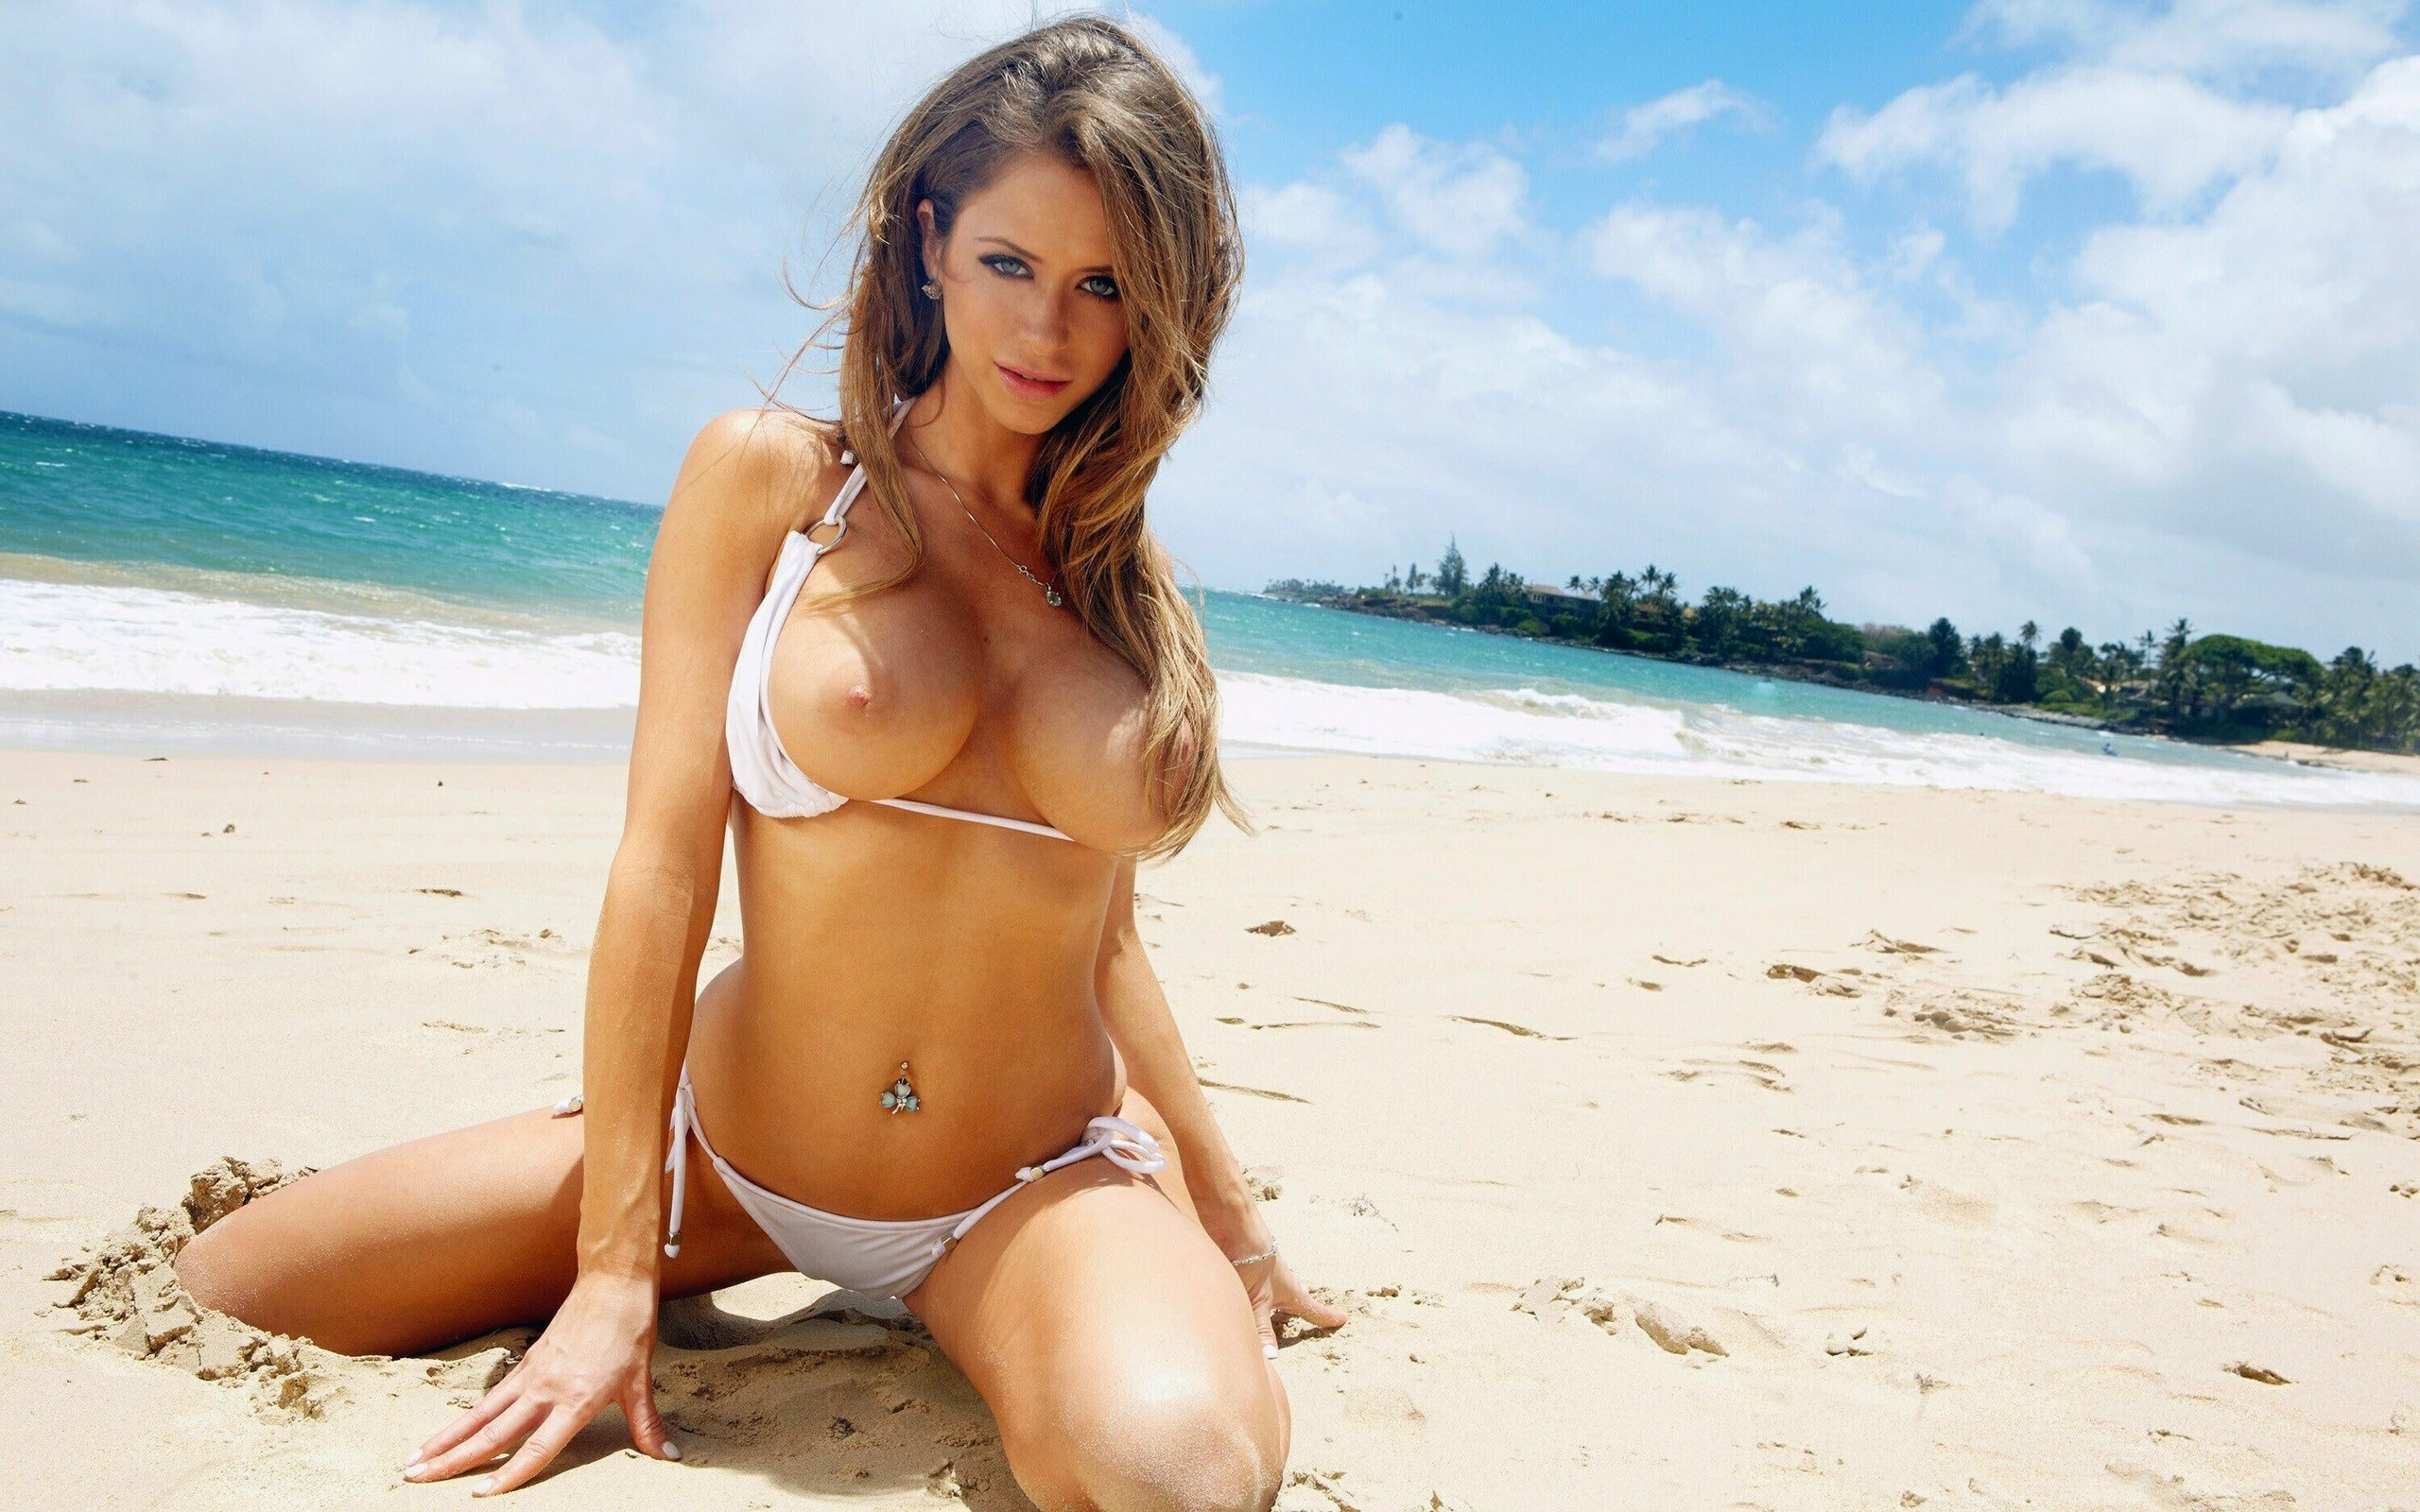 Erotic girl pictures